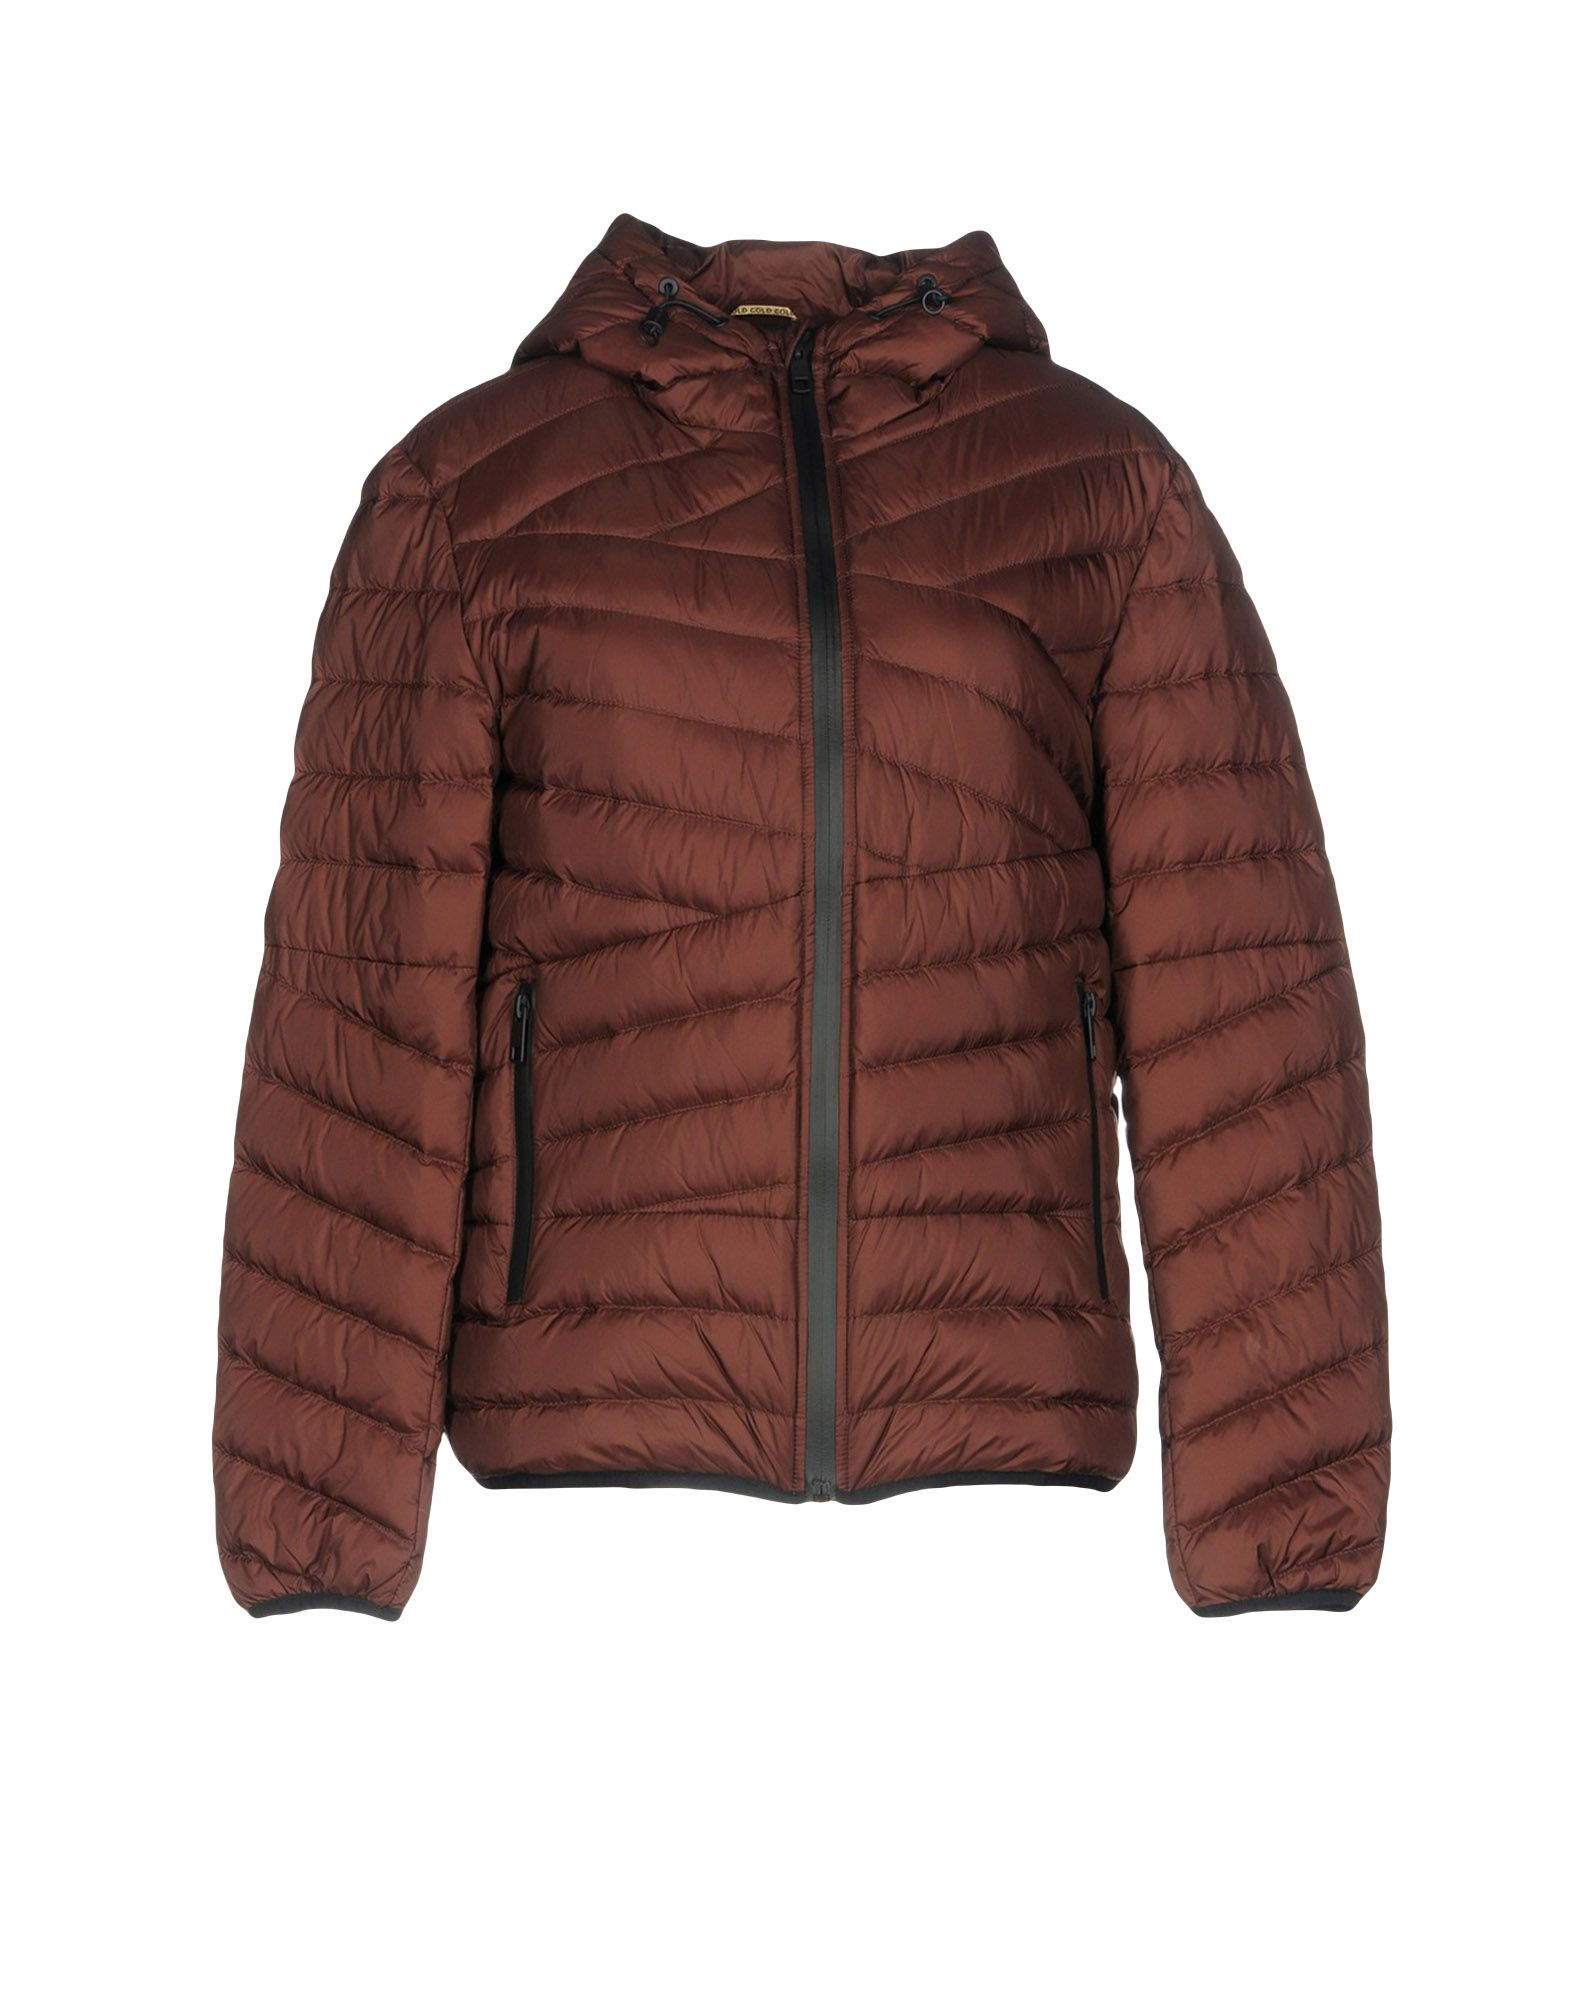 ANTONY MORATO Down Jacket in Cocoa